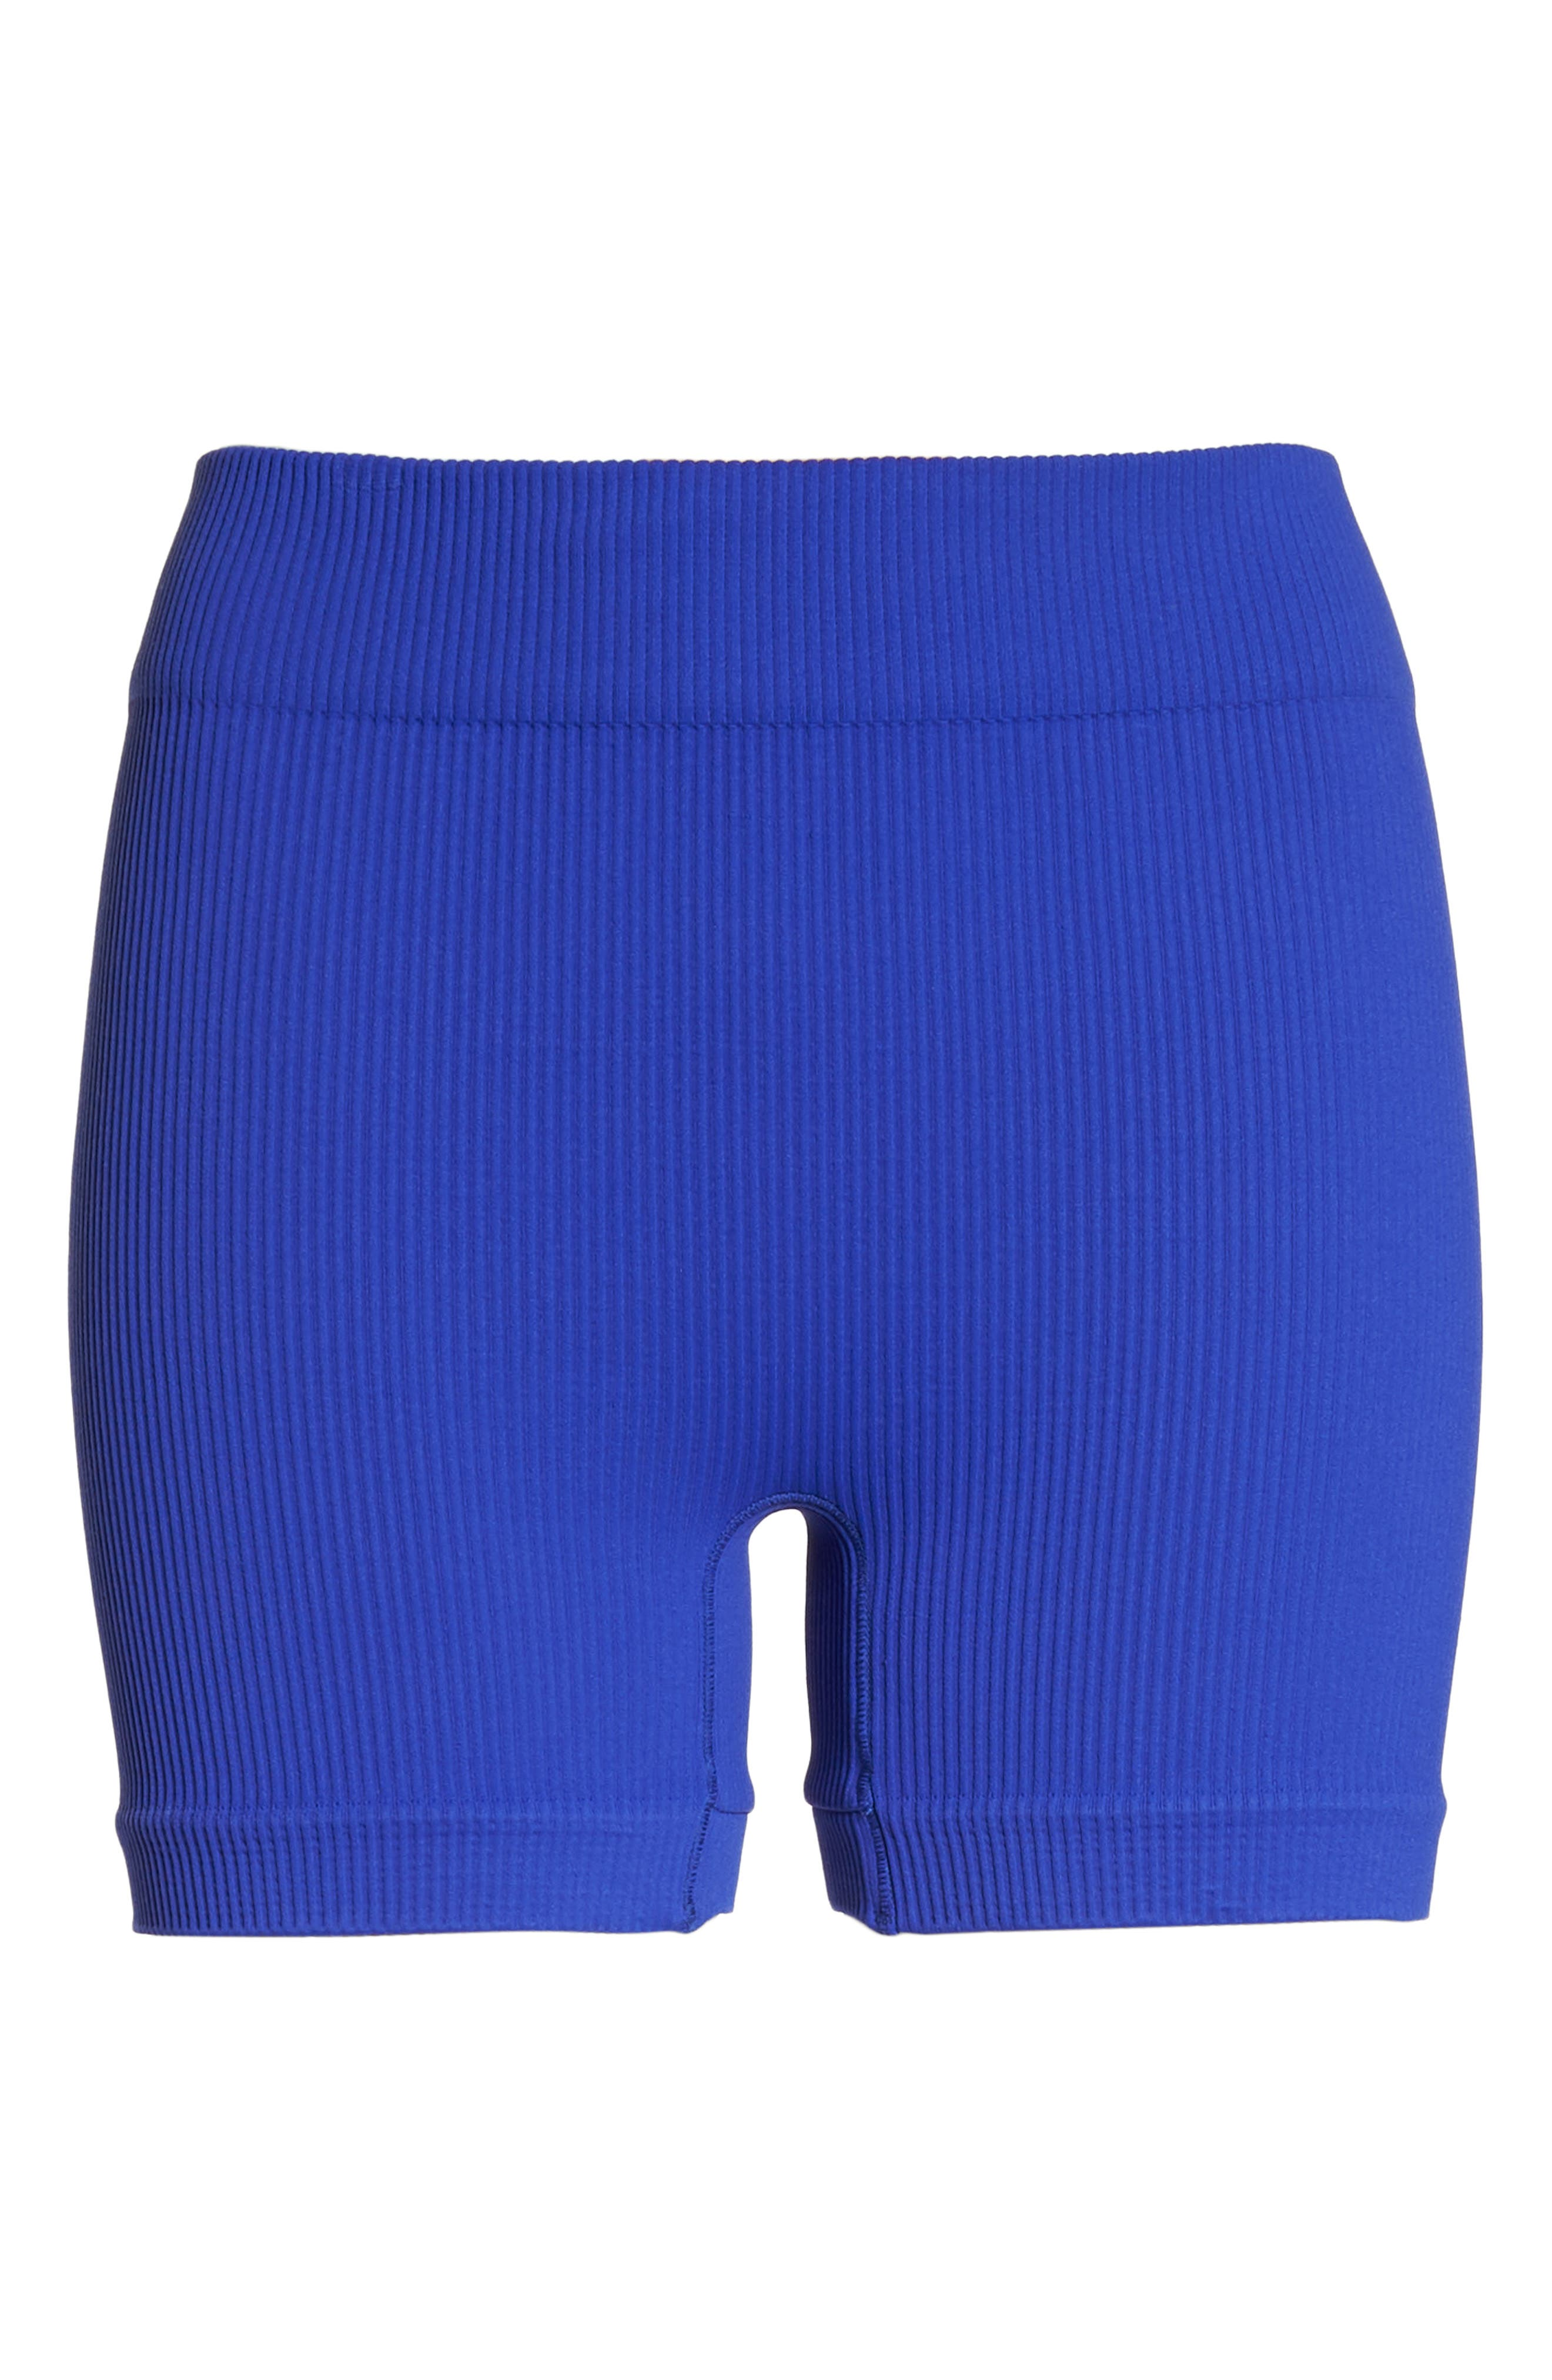 Free People Seamless Shorts,                             Alternate thumbnail 13, color,